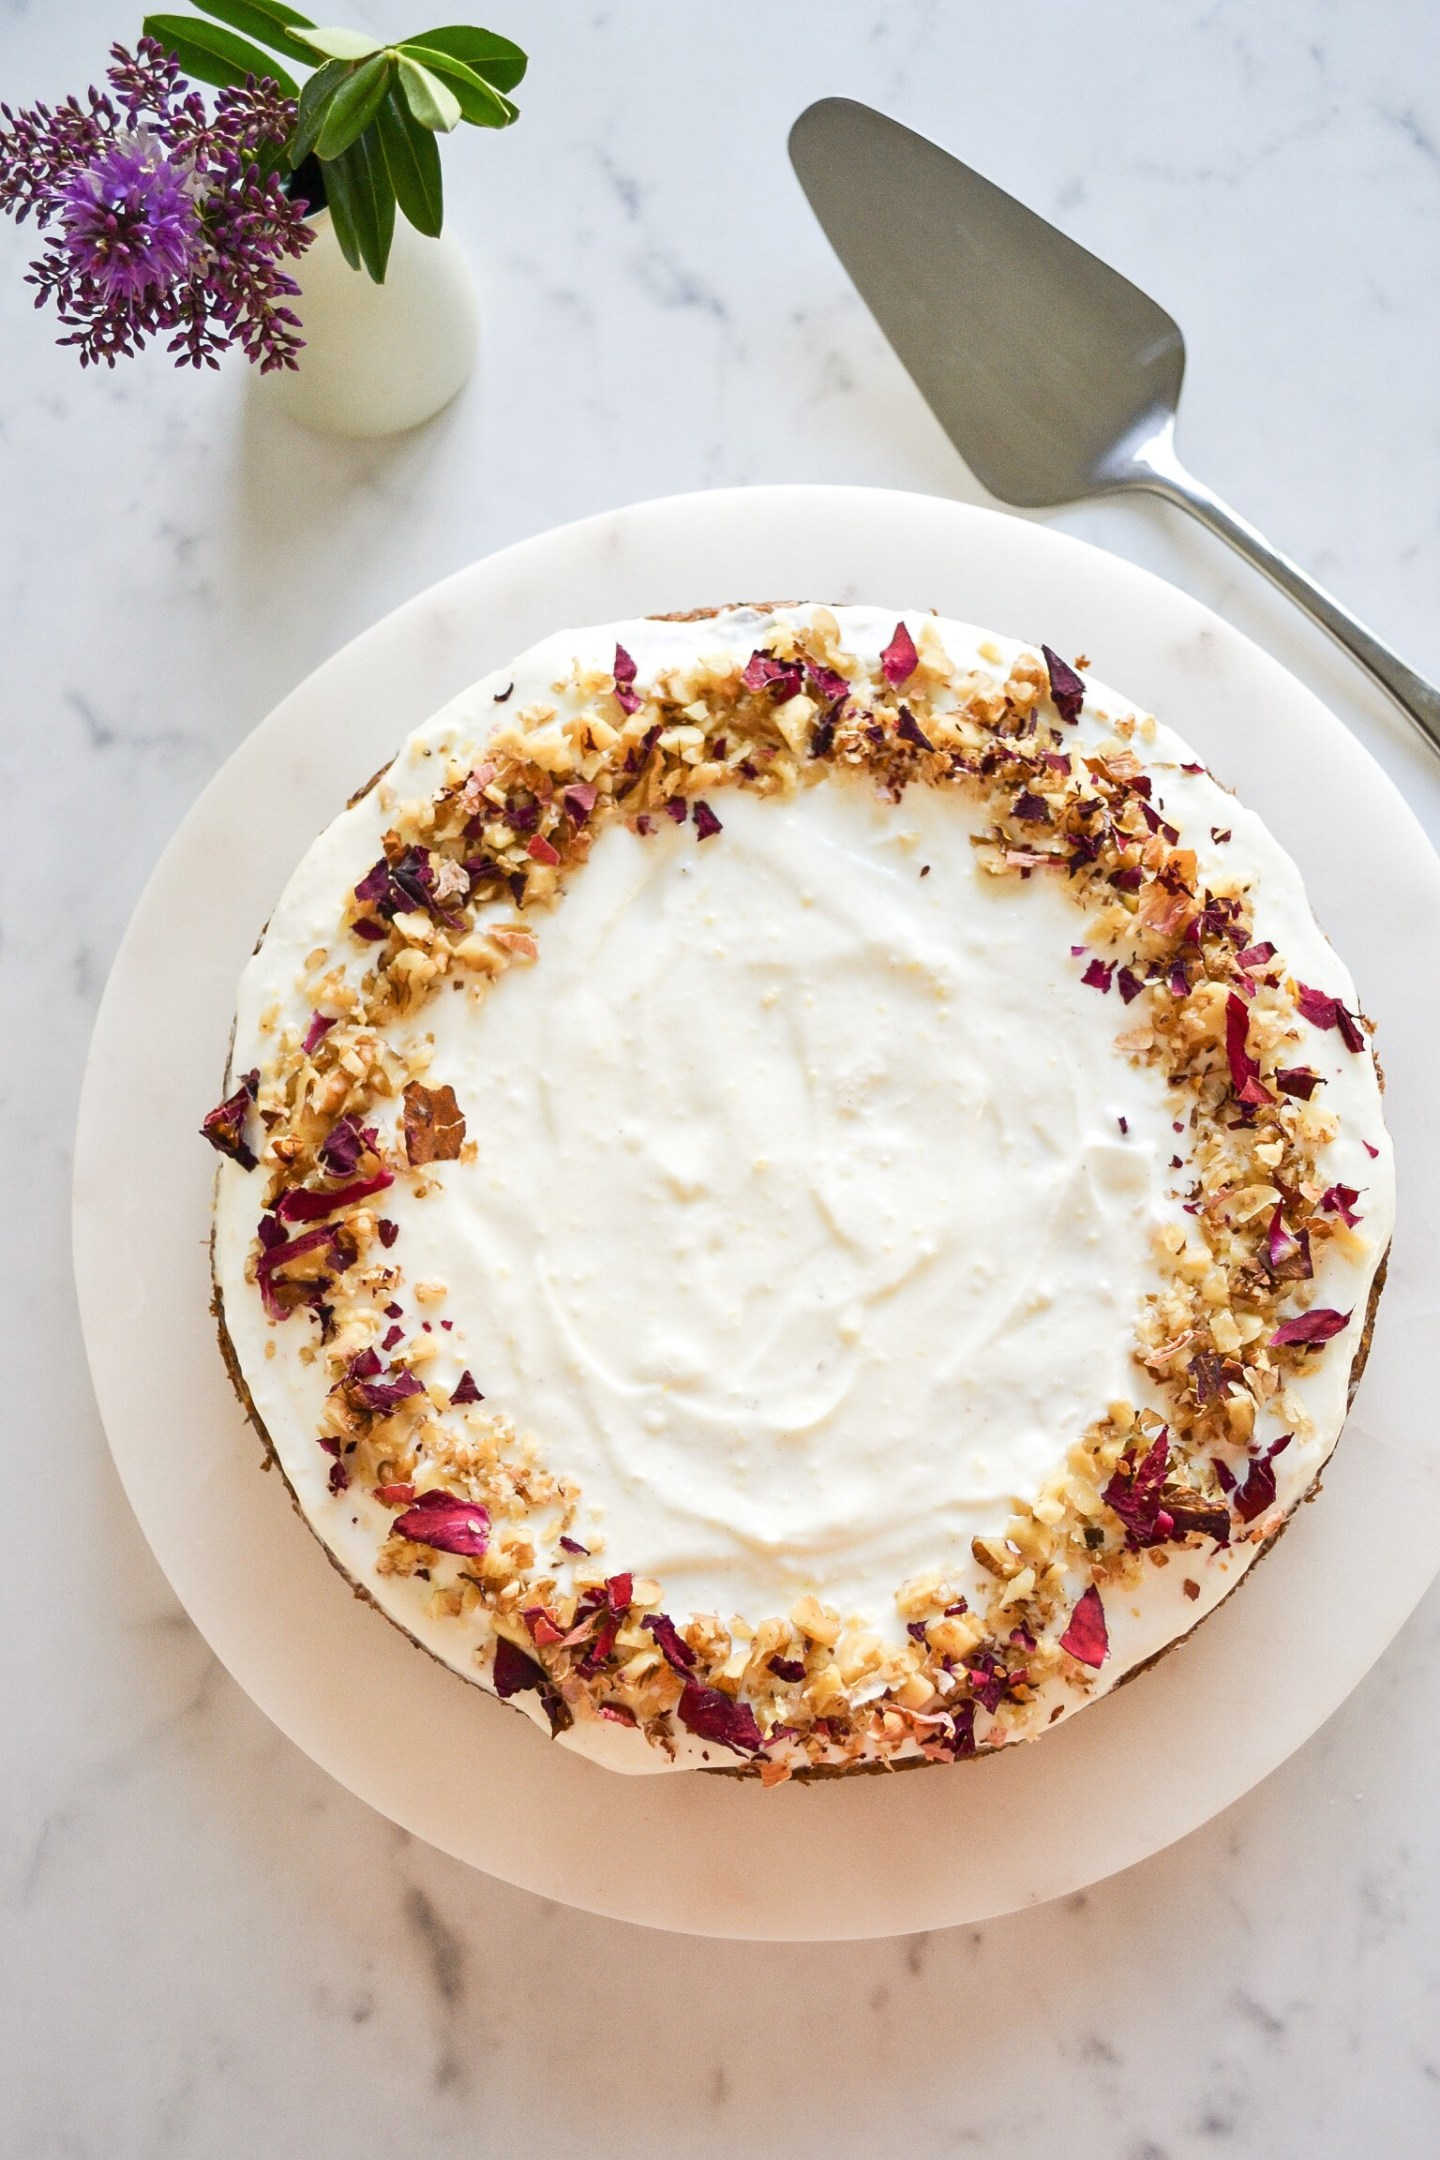 Healthy Carrot Cake with Lemon Yogurt Frosting